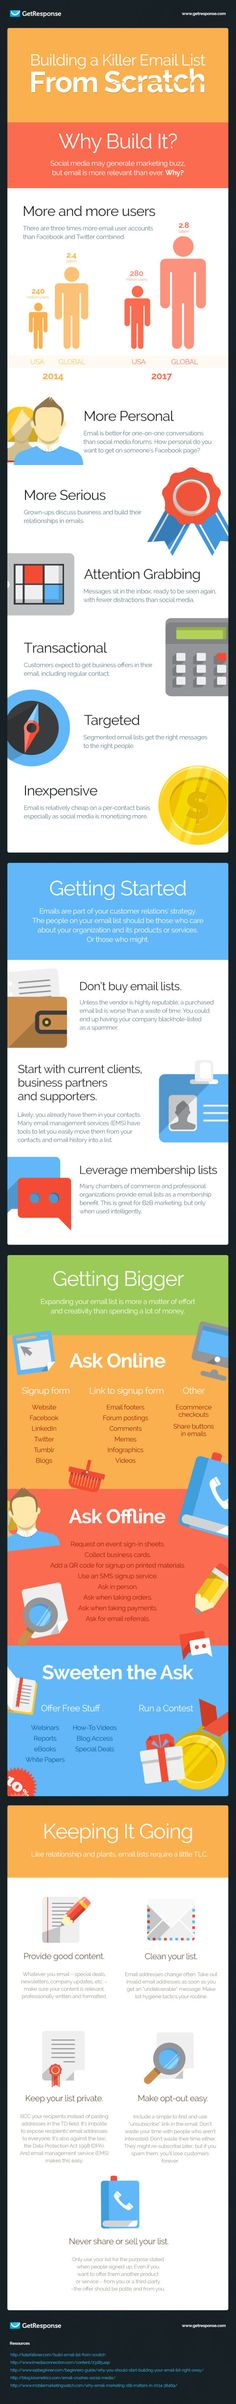 Infographic: Building a Killer Email List From Scratch #infographic #emailing